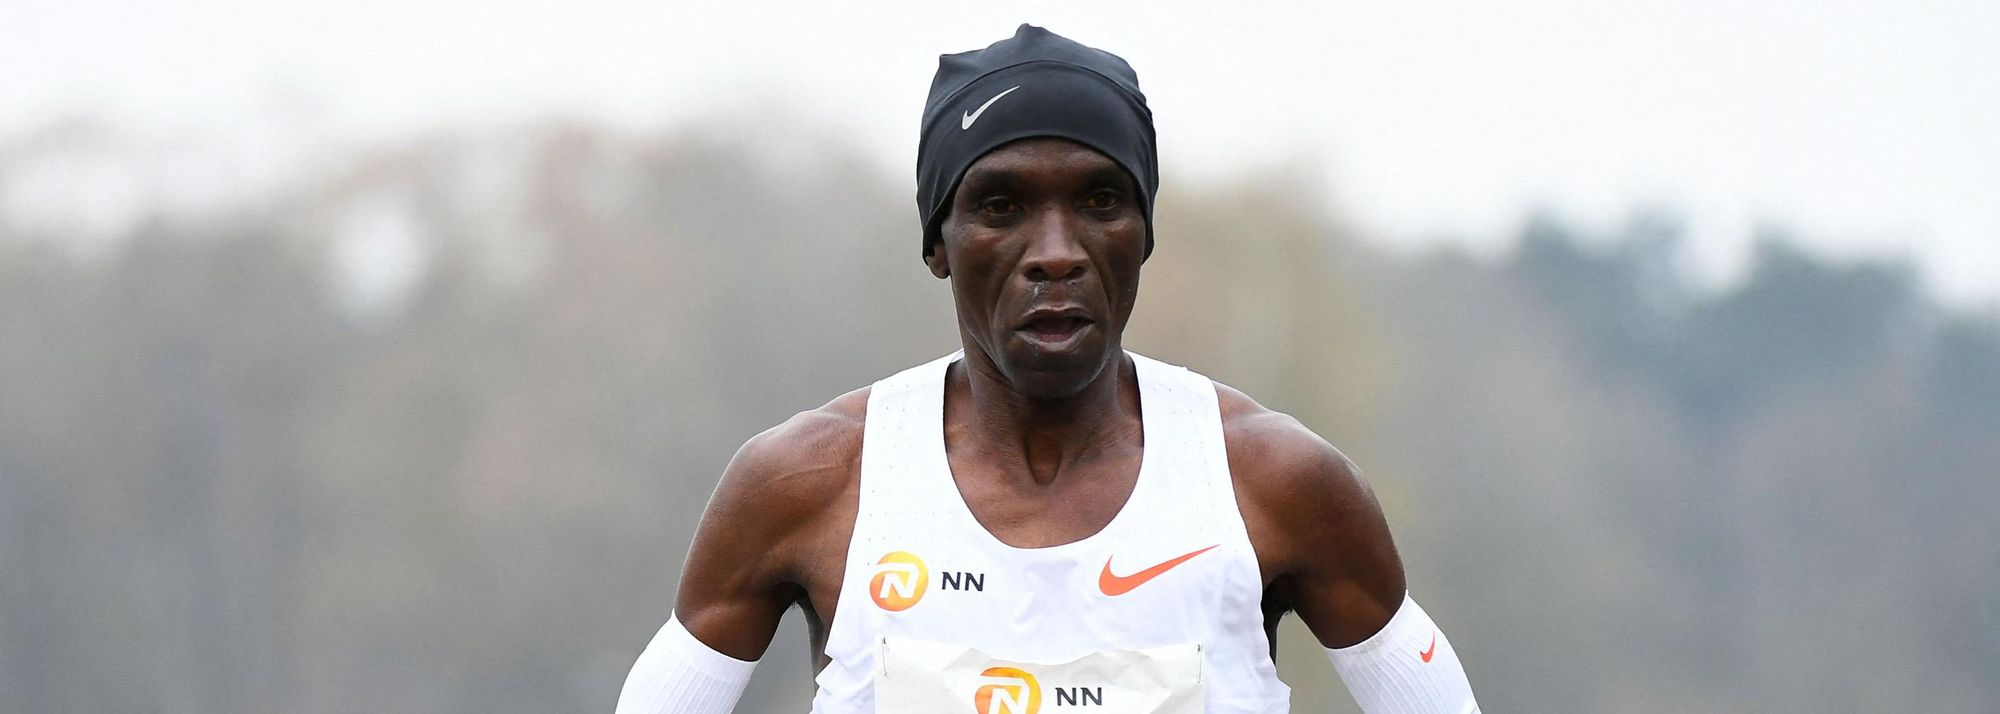 Eliud Kipchoge waited until the final 30 minutes of the NN Mission Marathon to make his winning move as the Kenyan great kicked on to win the World Athletics Label road race in 2:04:30 at Twente Airport in Enschede on Sunday (18).